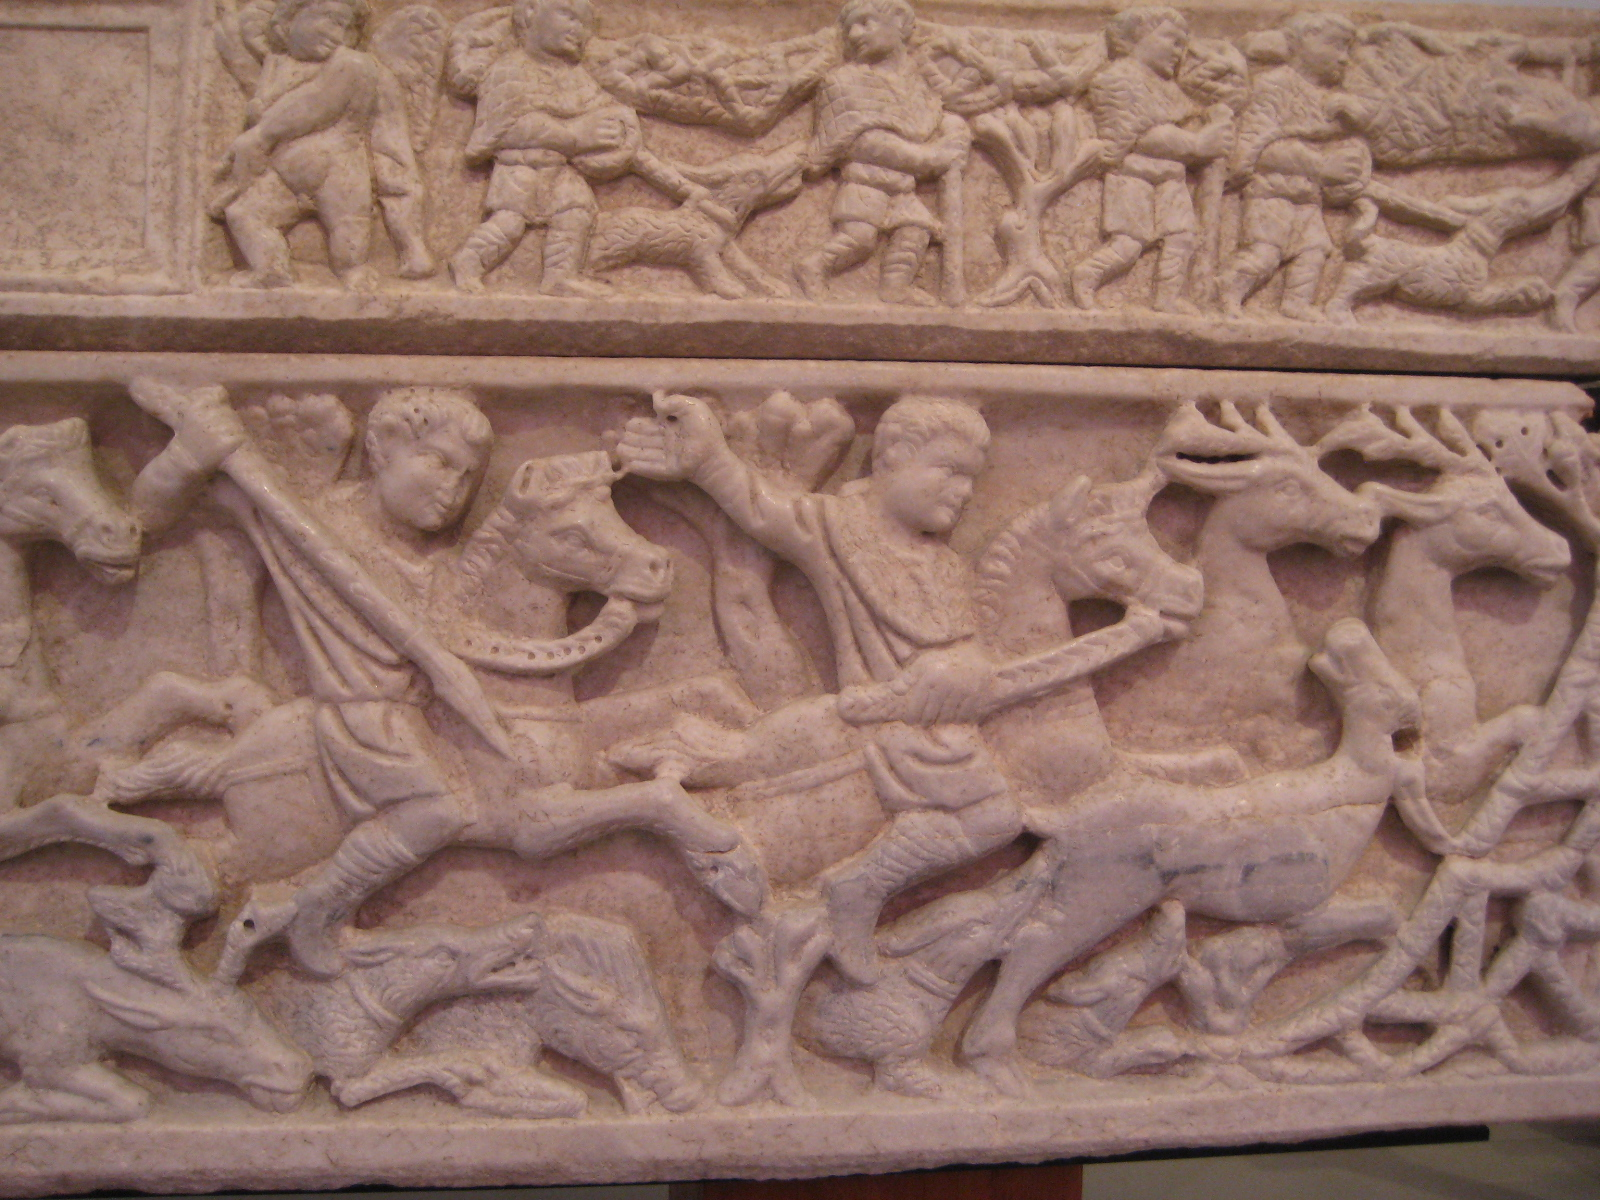 Hunting scene, from a late Roman sarcophagus